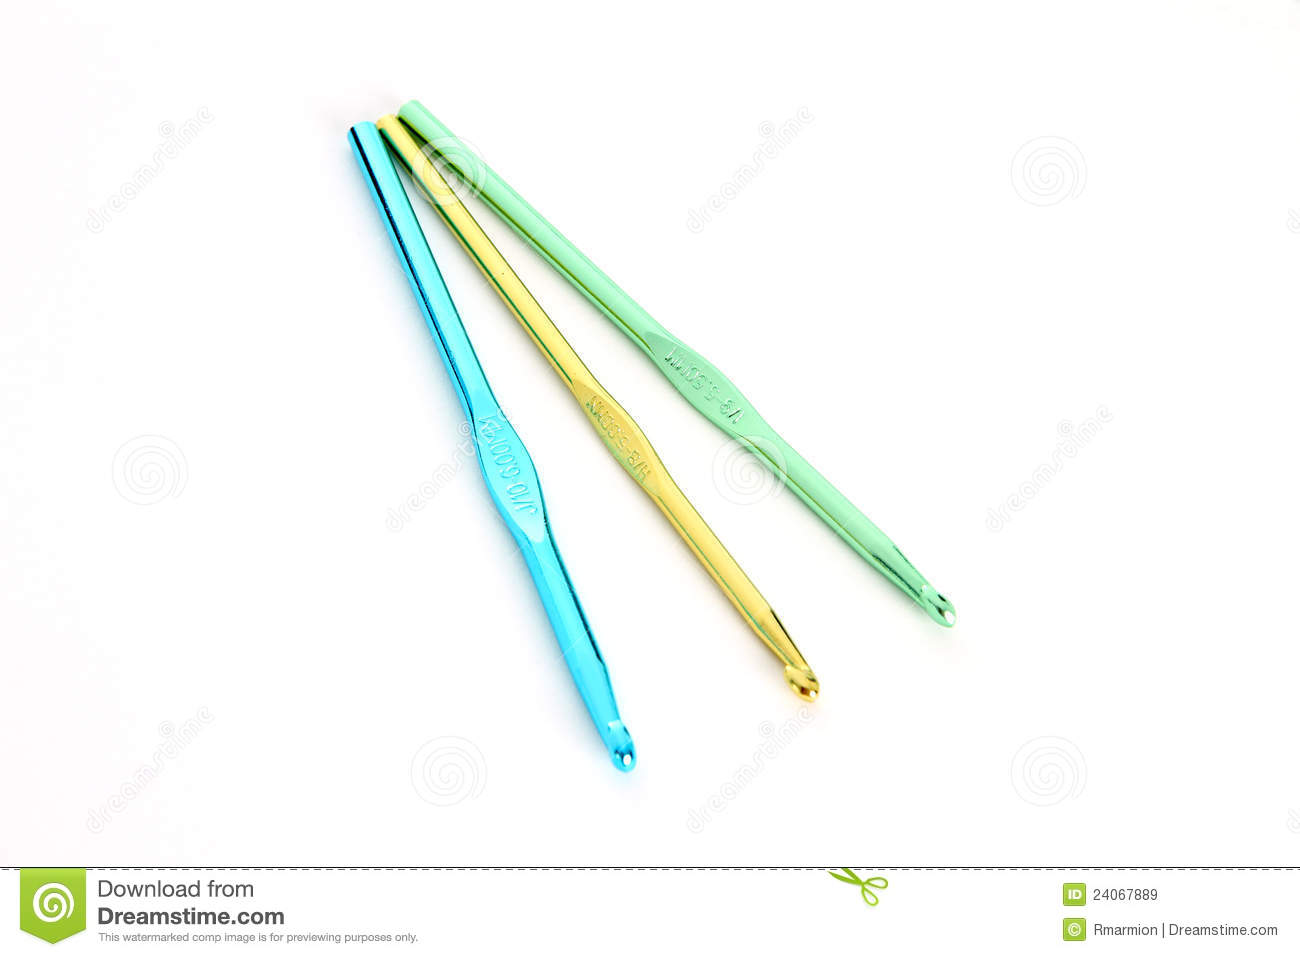 Crochet Needles Royalty Free Stock Images - Image: 24067889